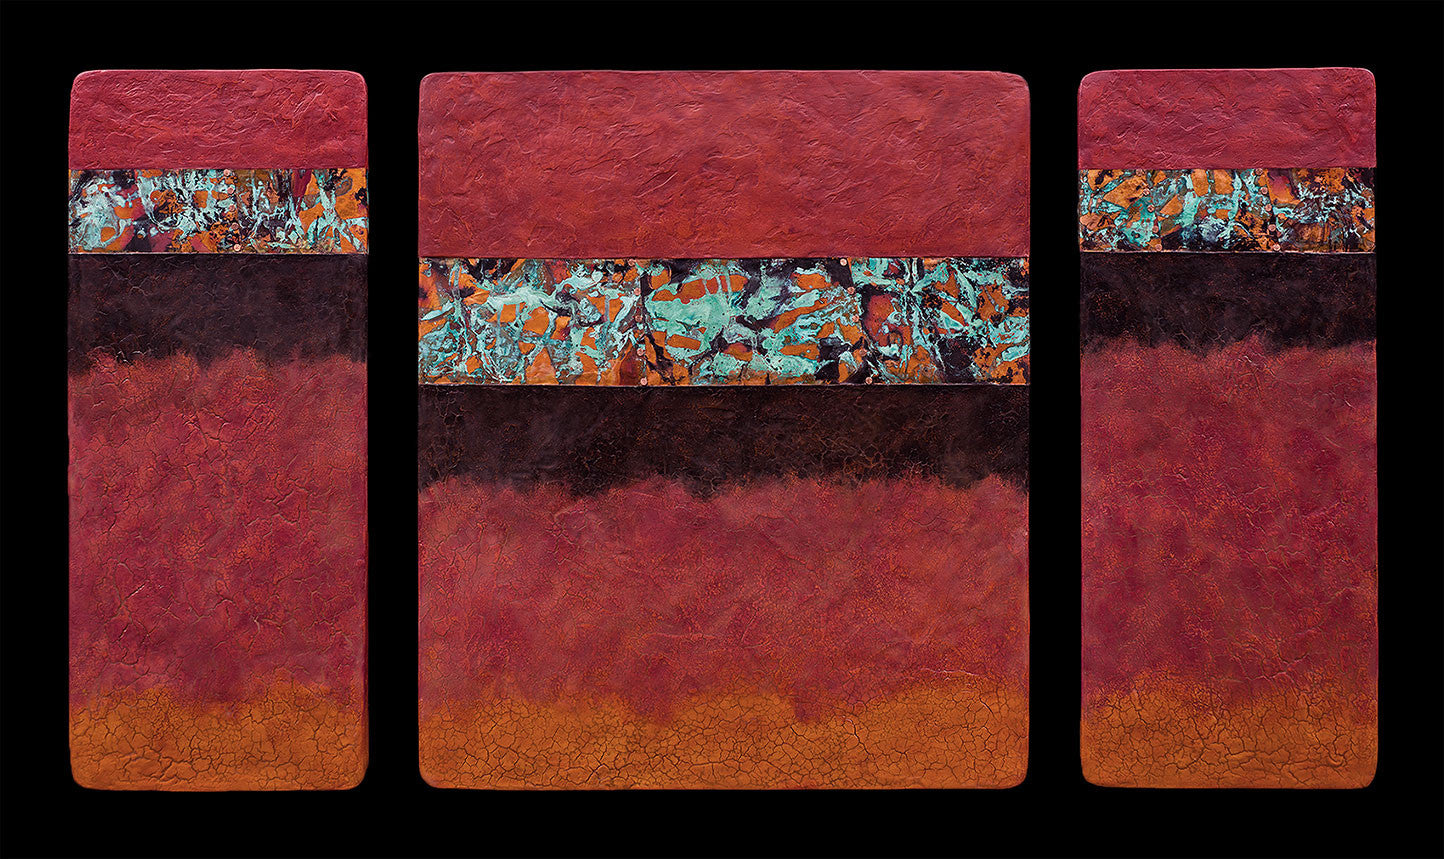 Canyon Walls 2 / 48 x 26 x 1.5 / abaca fiber panels copper leaf and fired copper - acrylic paints and encaustic bees wax